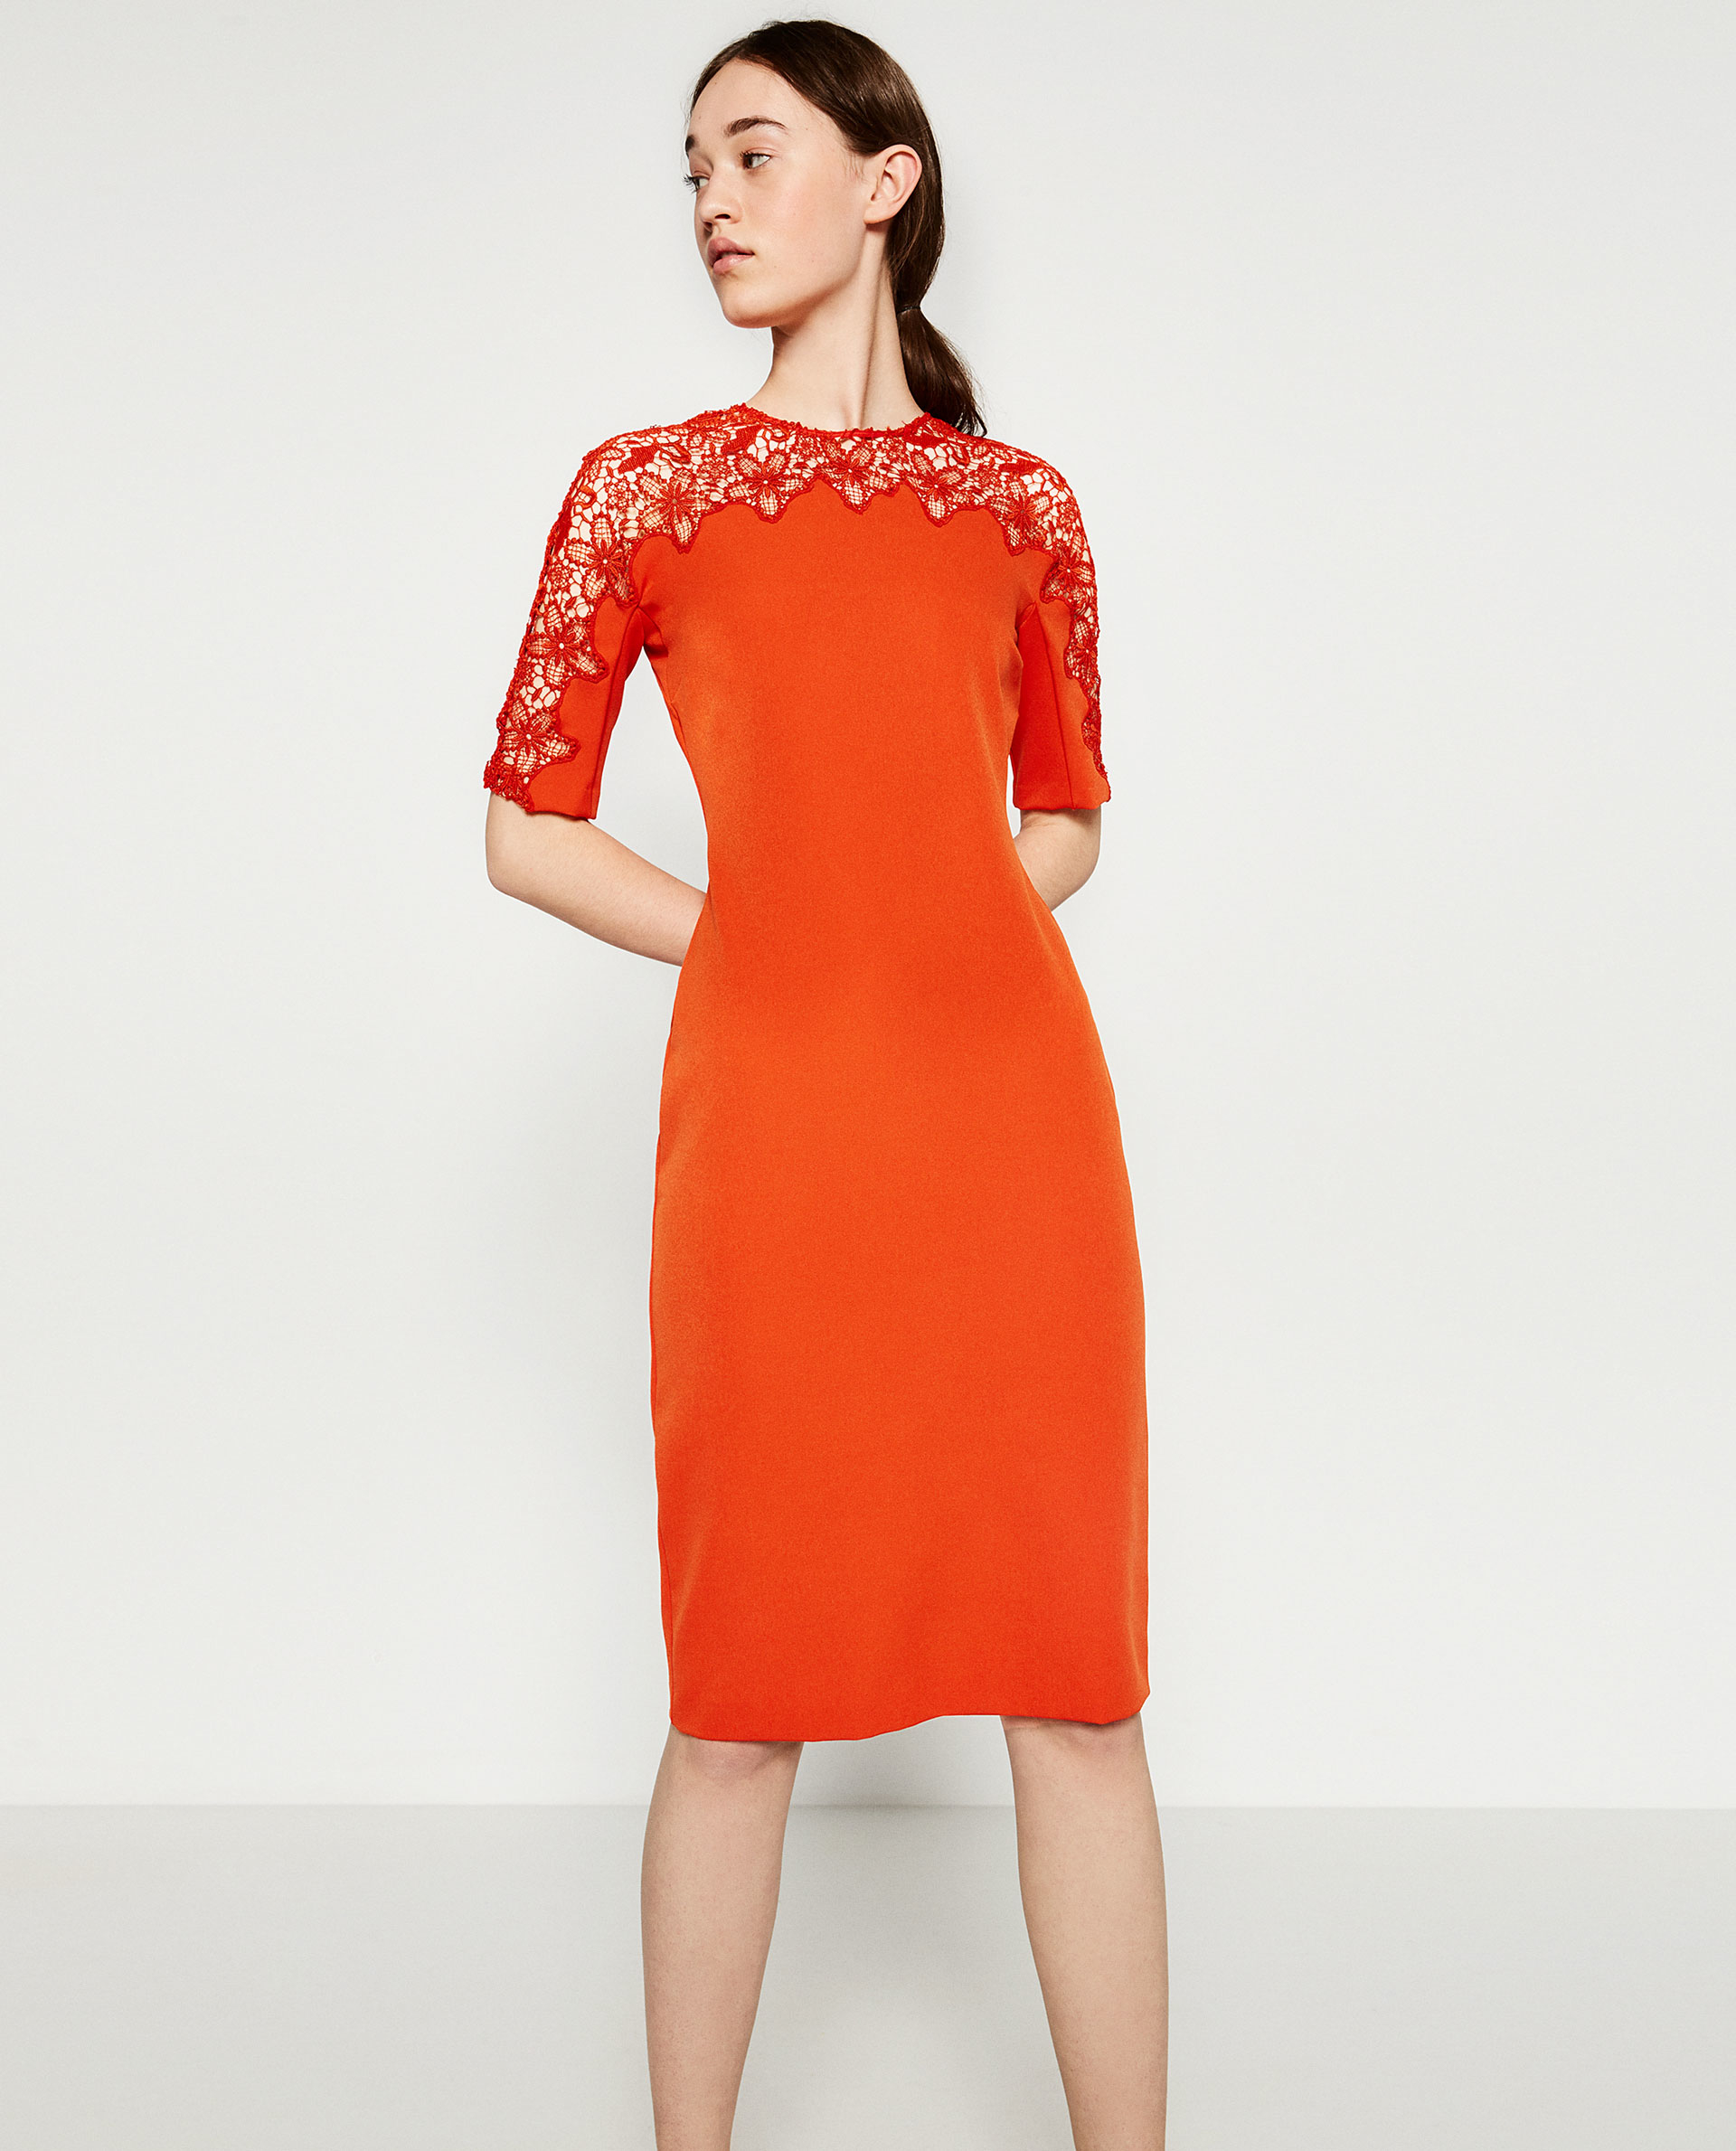 Unique ZARA  WOMAN  TRICOLOR MIDI DRESS  Zara  Pinterest